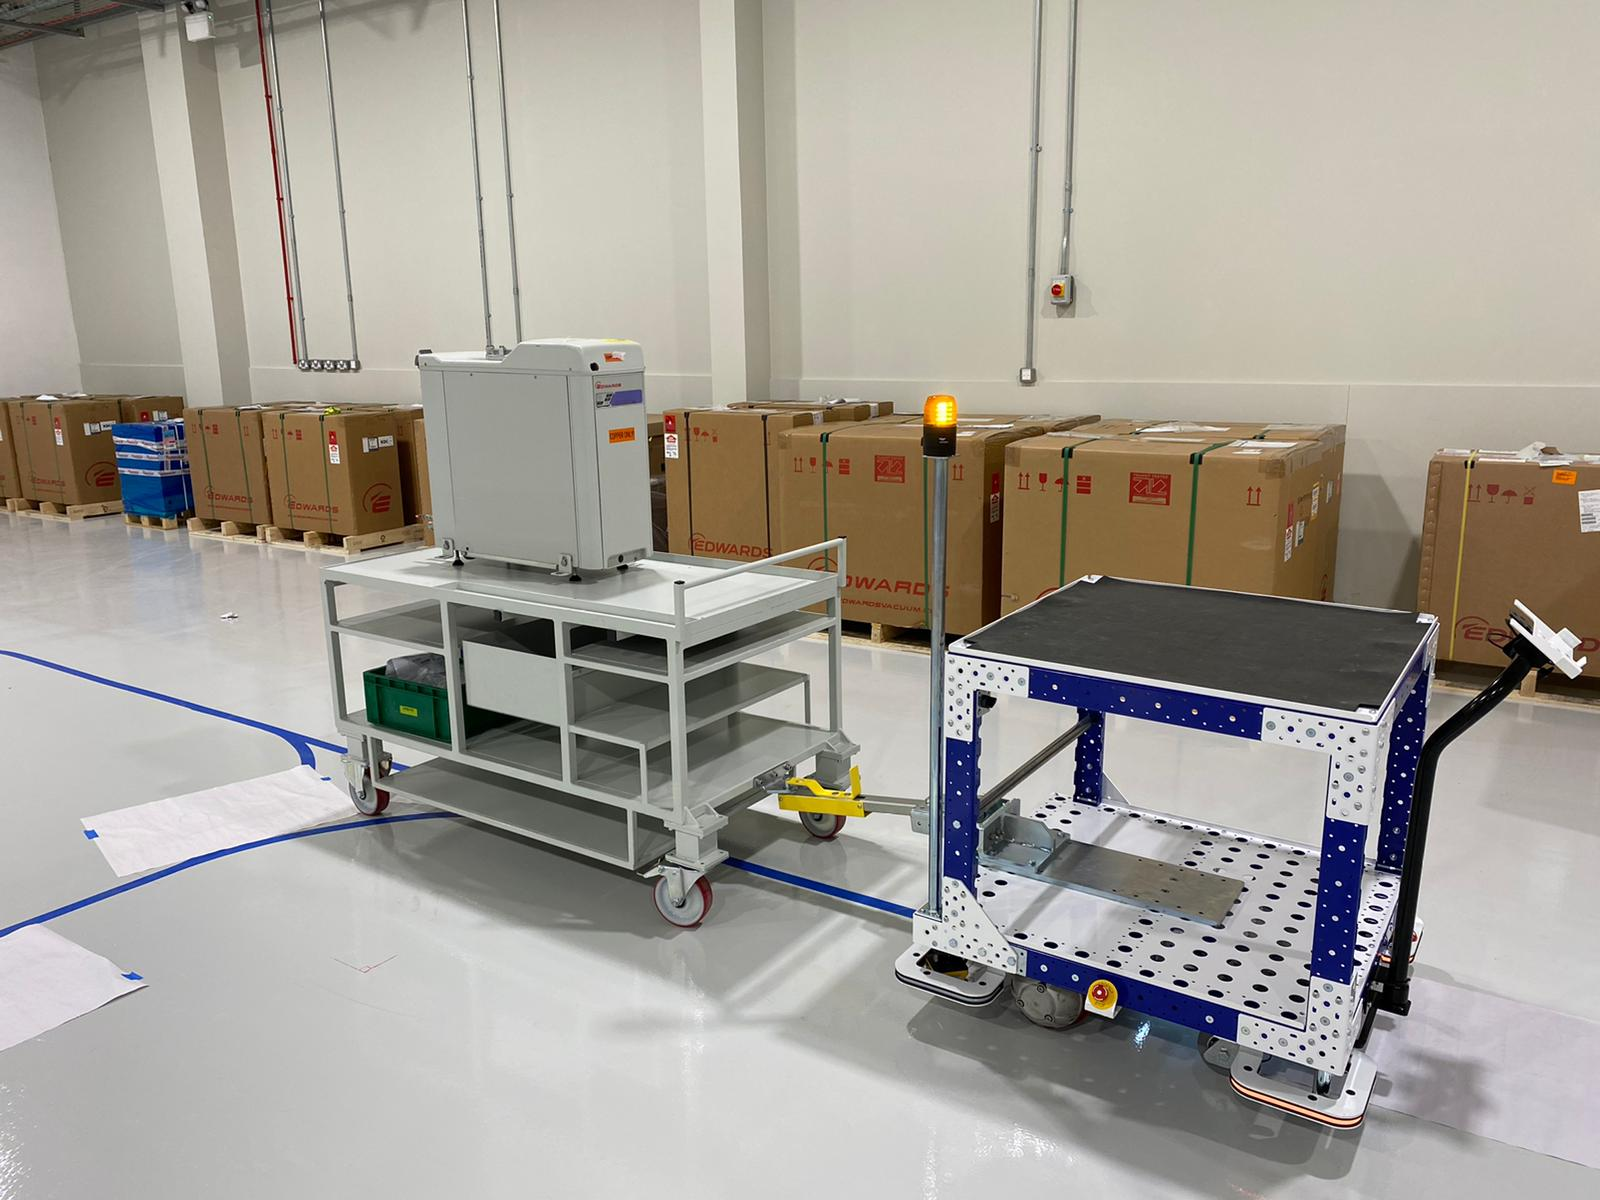 Logistics 4.0 and the Mobile Industrial Robot